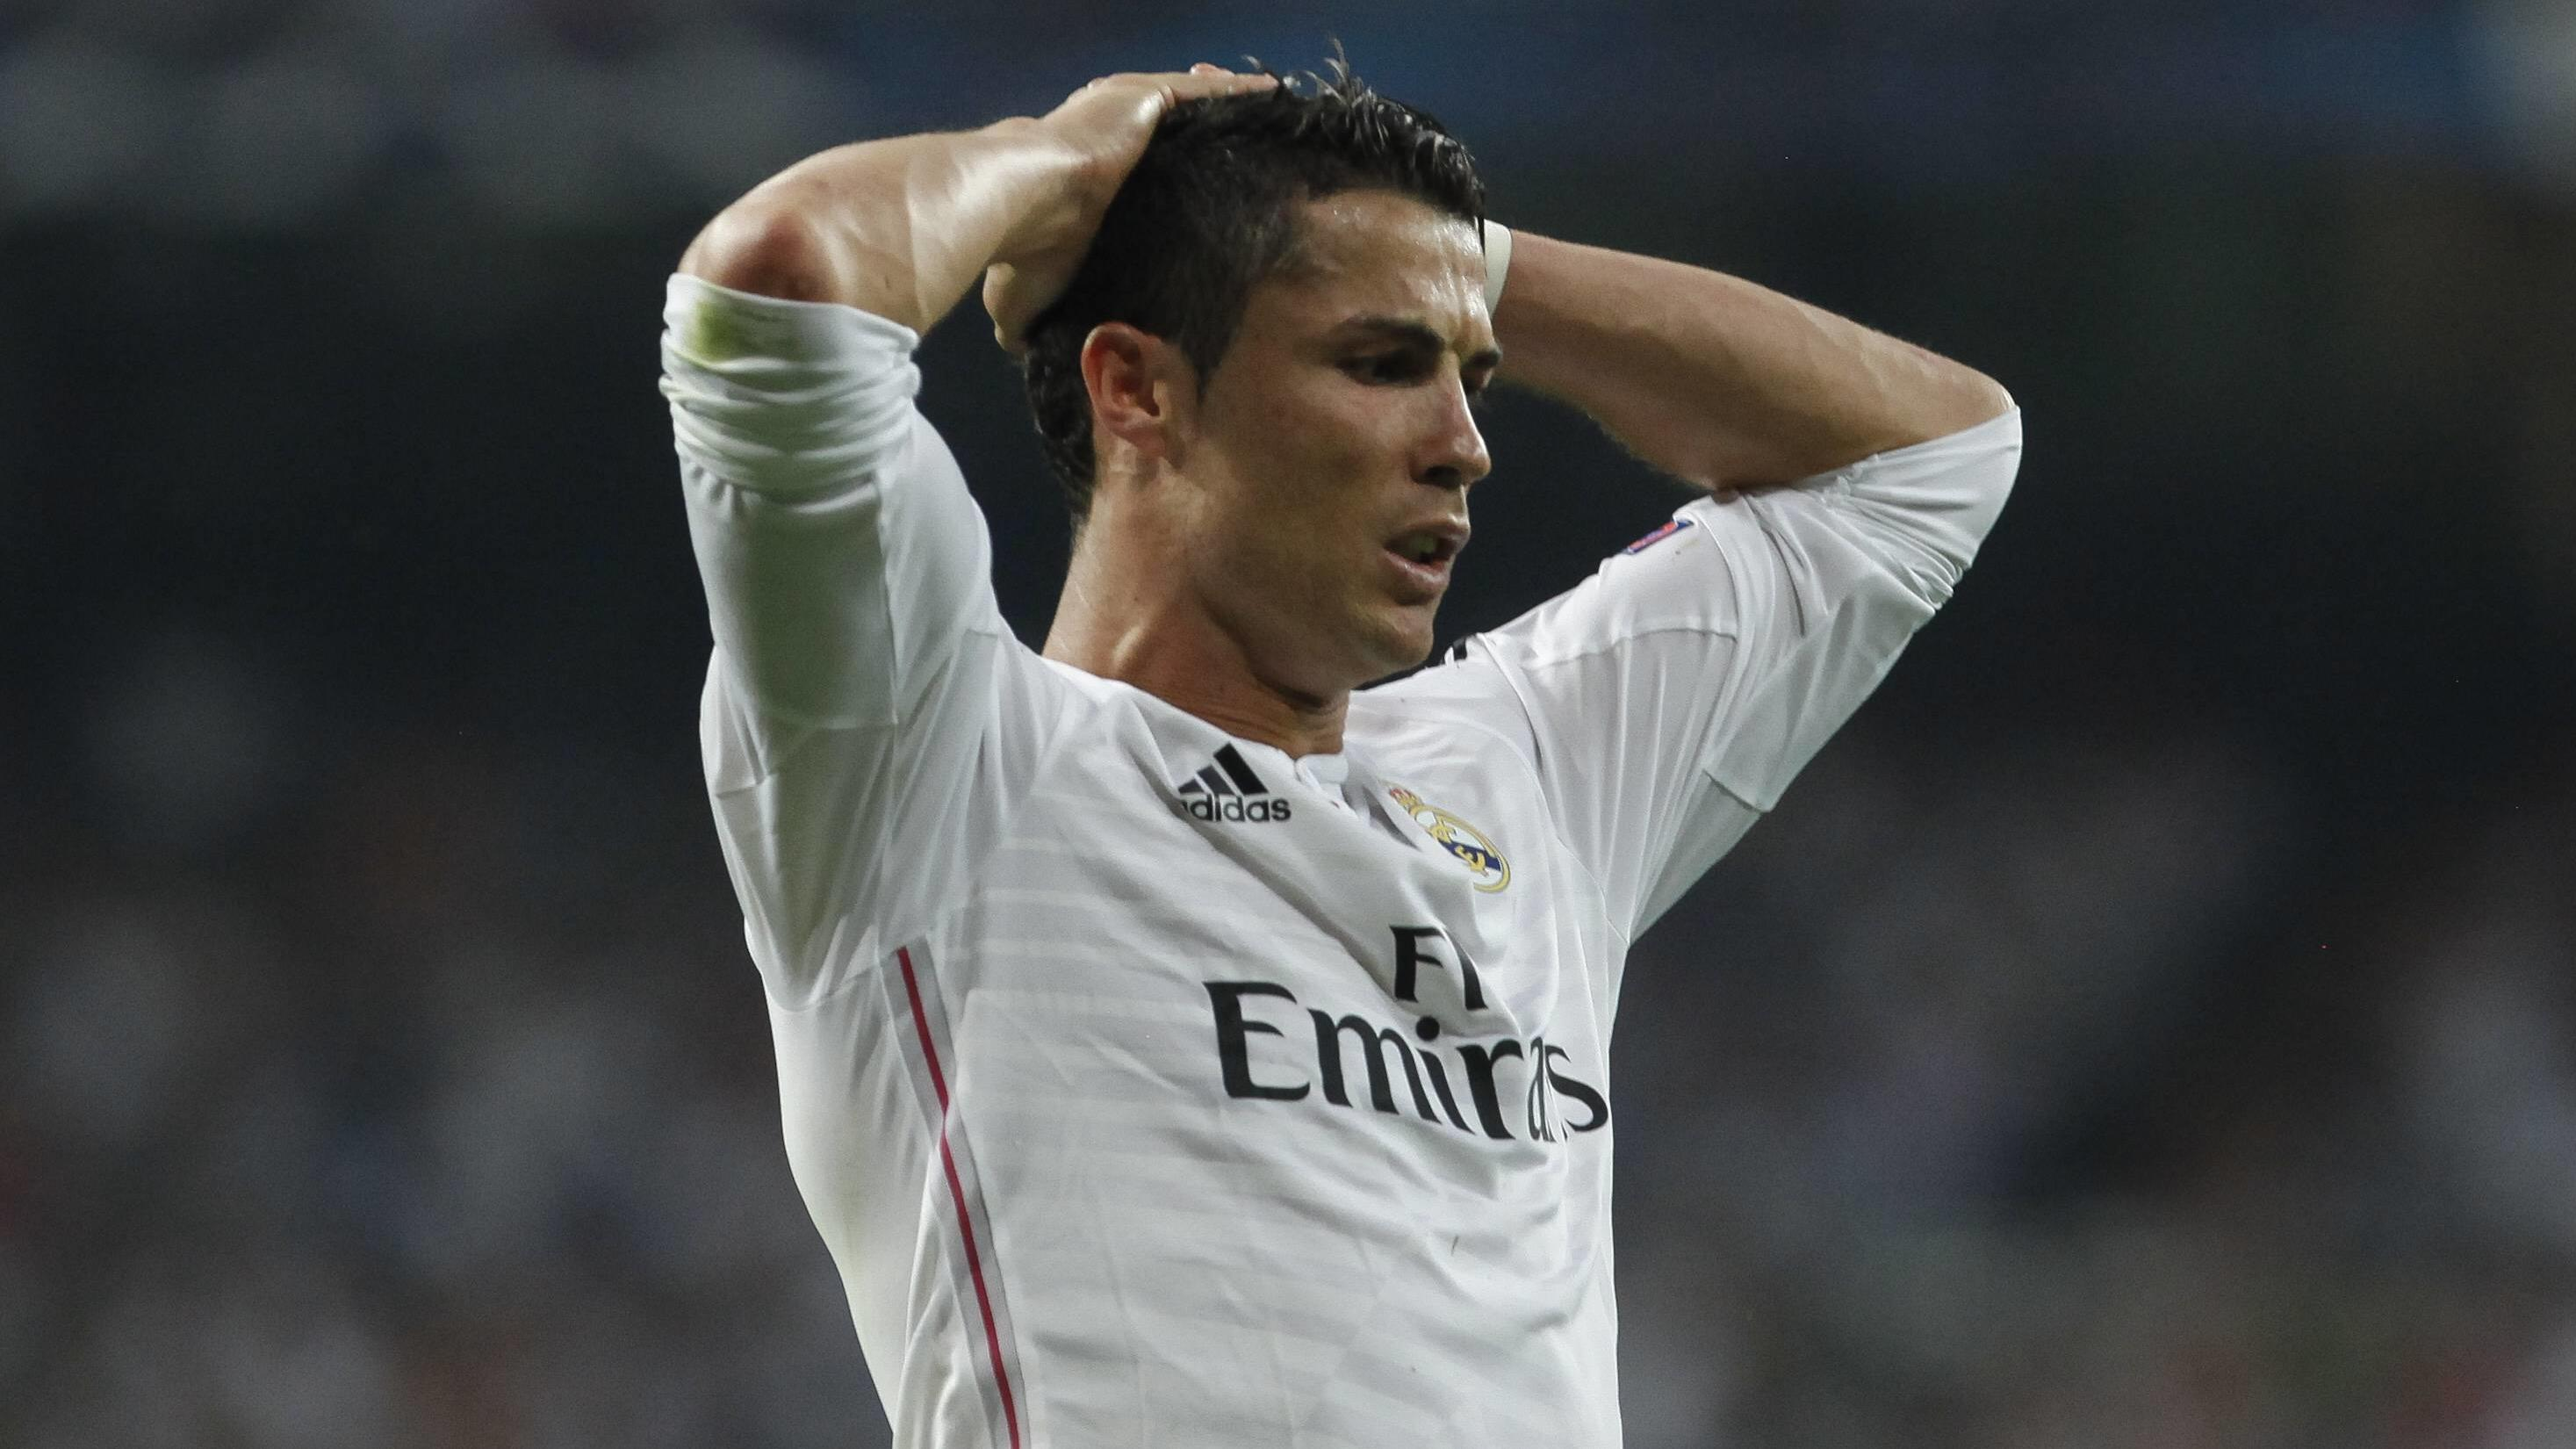 Real Madrid s Cristiano Ronaldo reacts during the Champions League semi final soccer match between Real Madrid and Juventus at Santiago Bernabeu stadium in Madrid, Spain. May 13, 2015. PUBLICATIONxINxGERxSUIxAUTxPOLxDENxNORxSWExONLY (2015051300023)